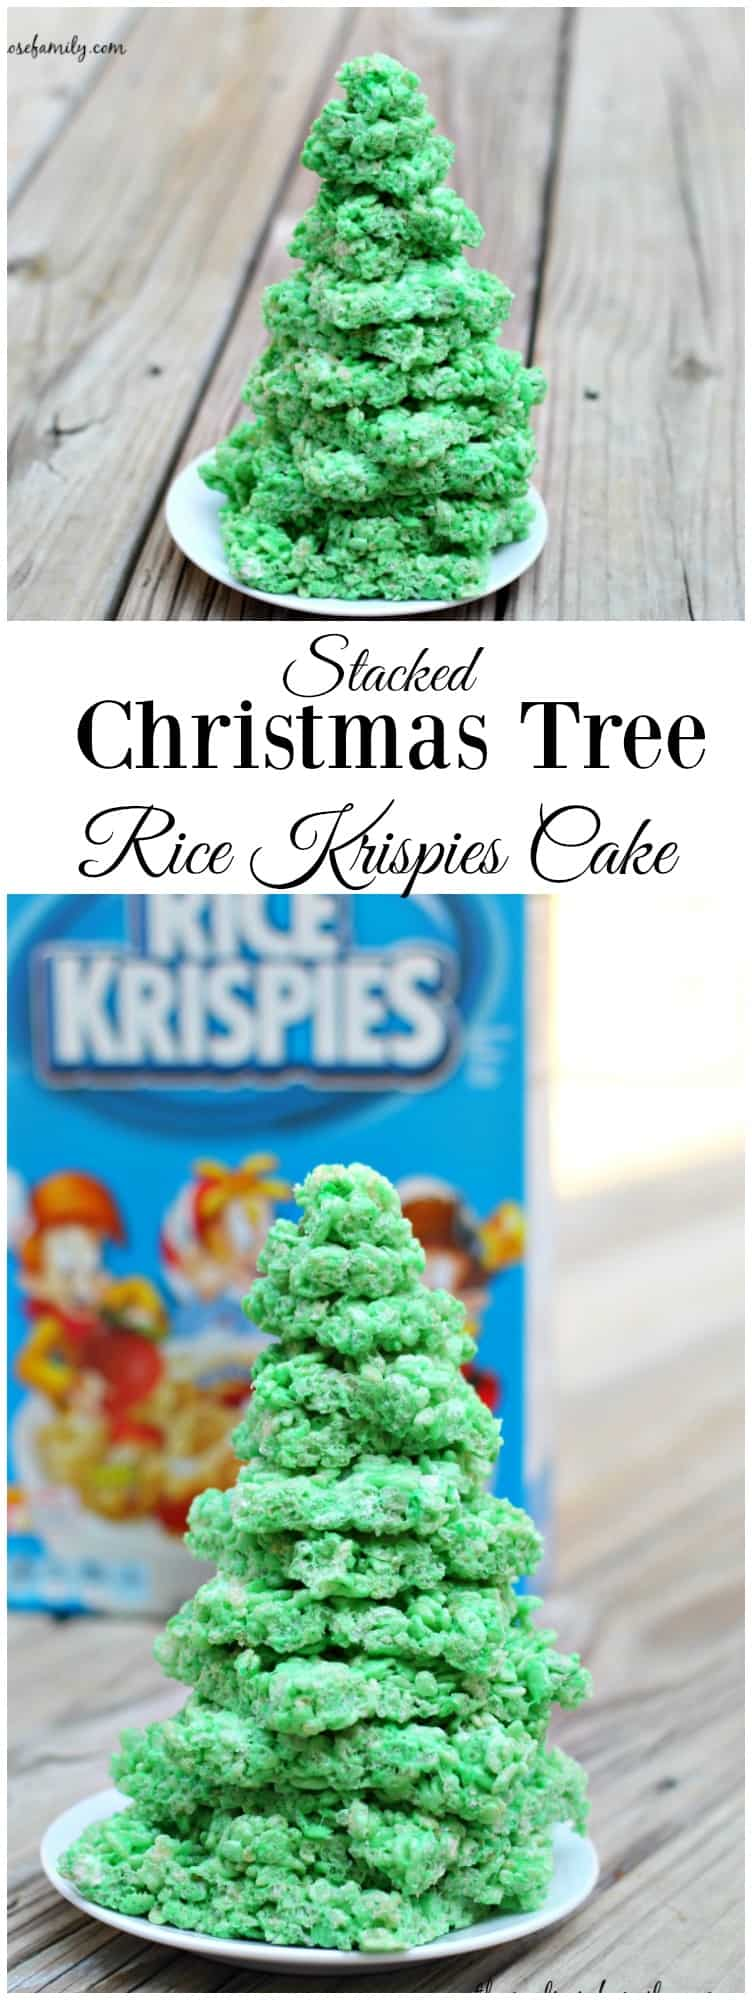 Stacked Christmas Tree Rice Krispies Cake #christmasdessert #dessert #themelrosefamily